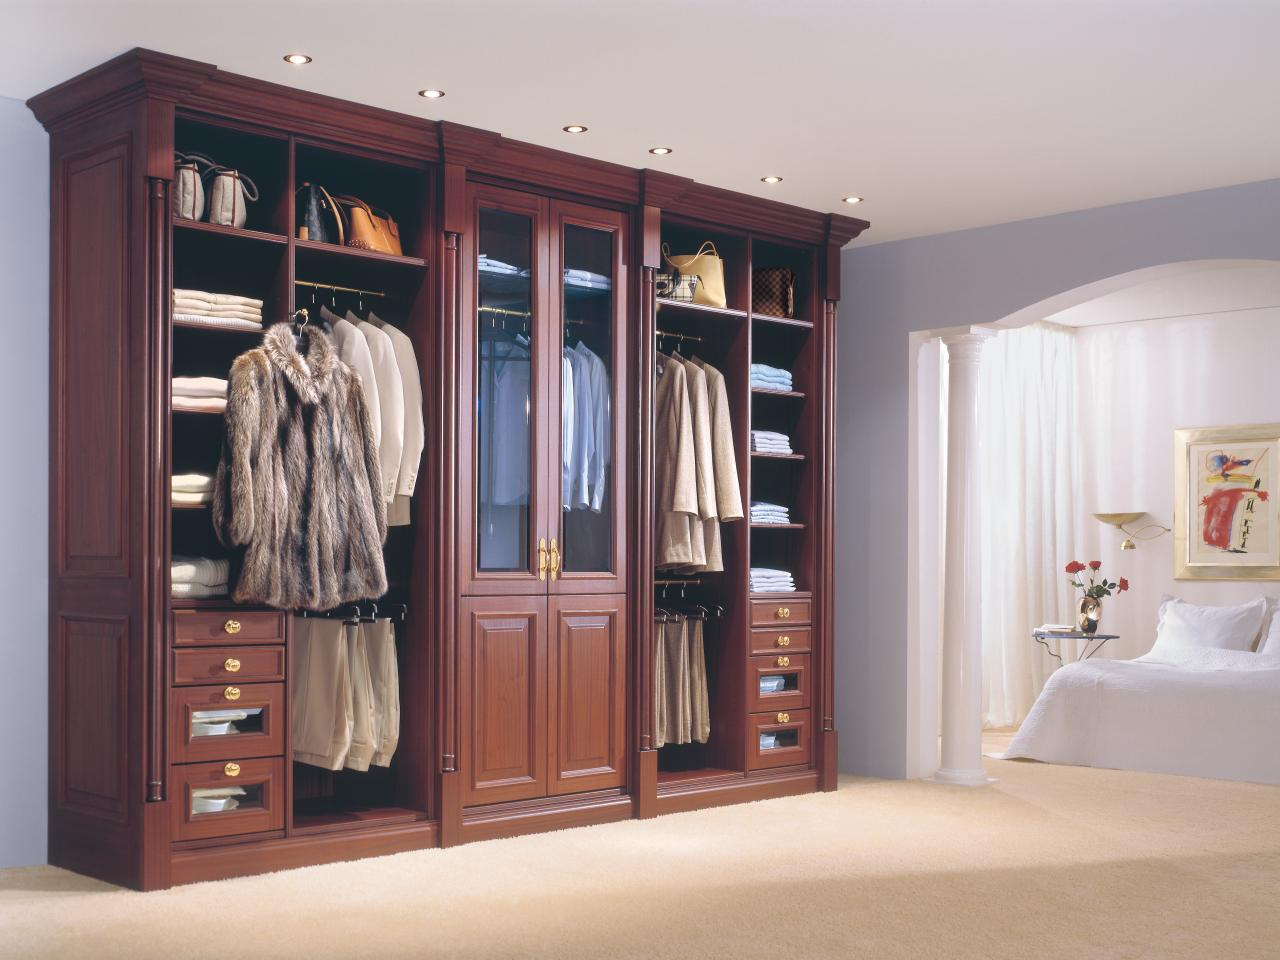 Picture of: Folding Dresser